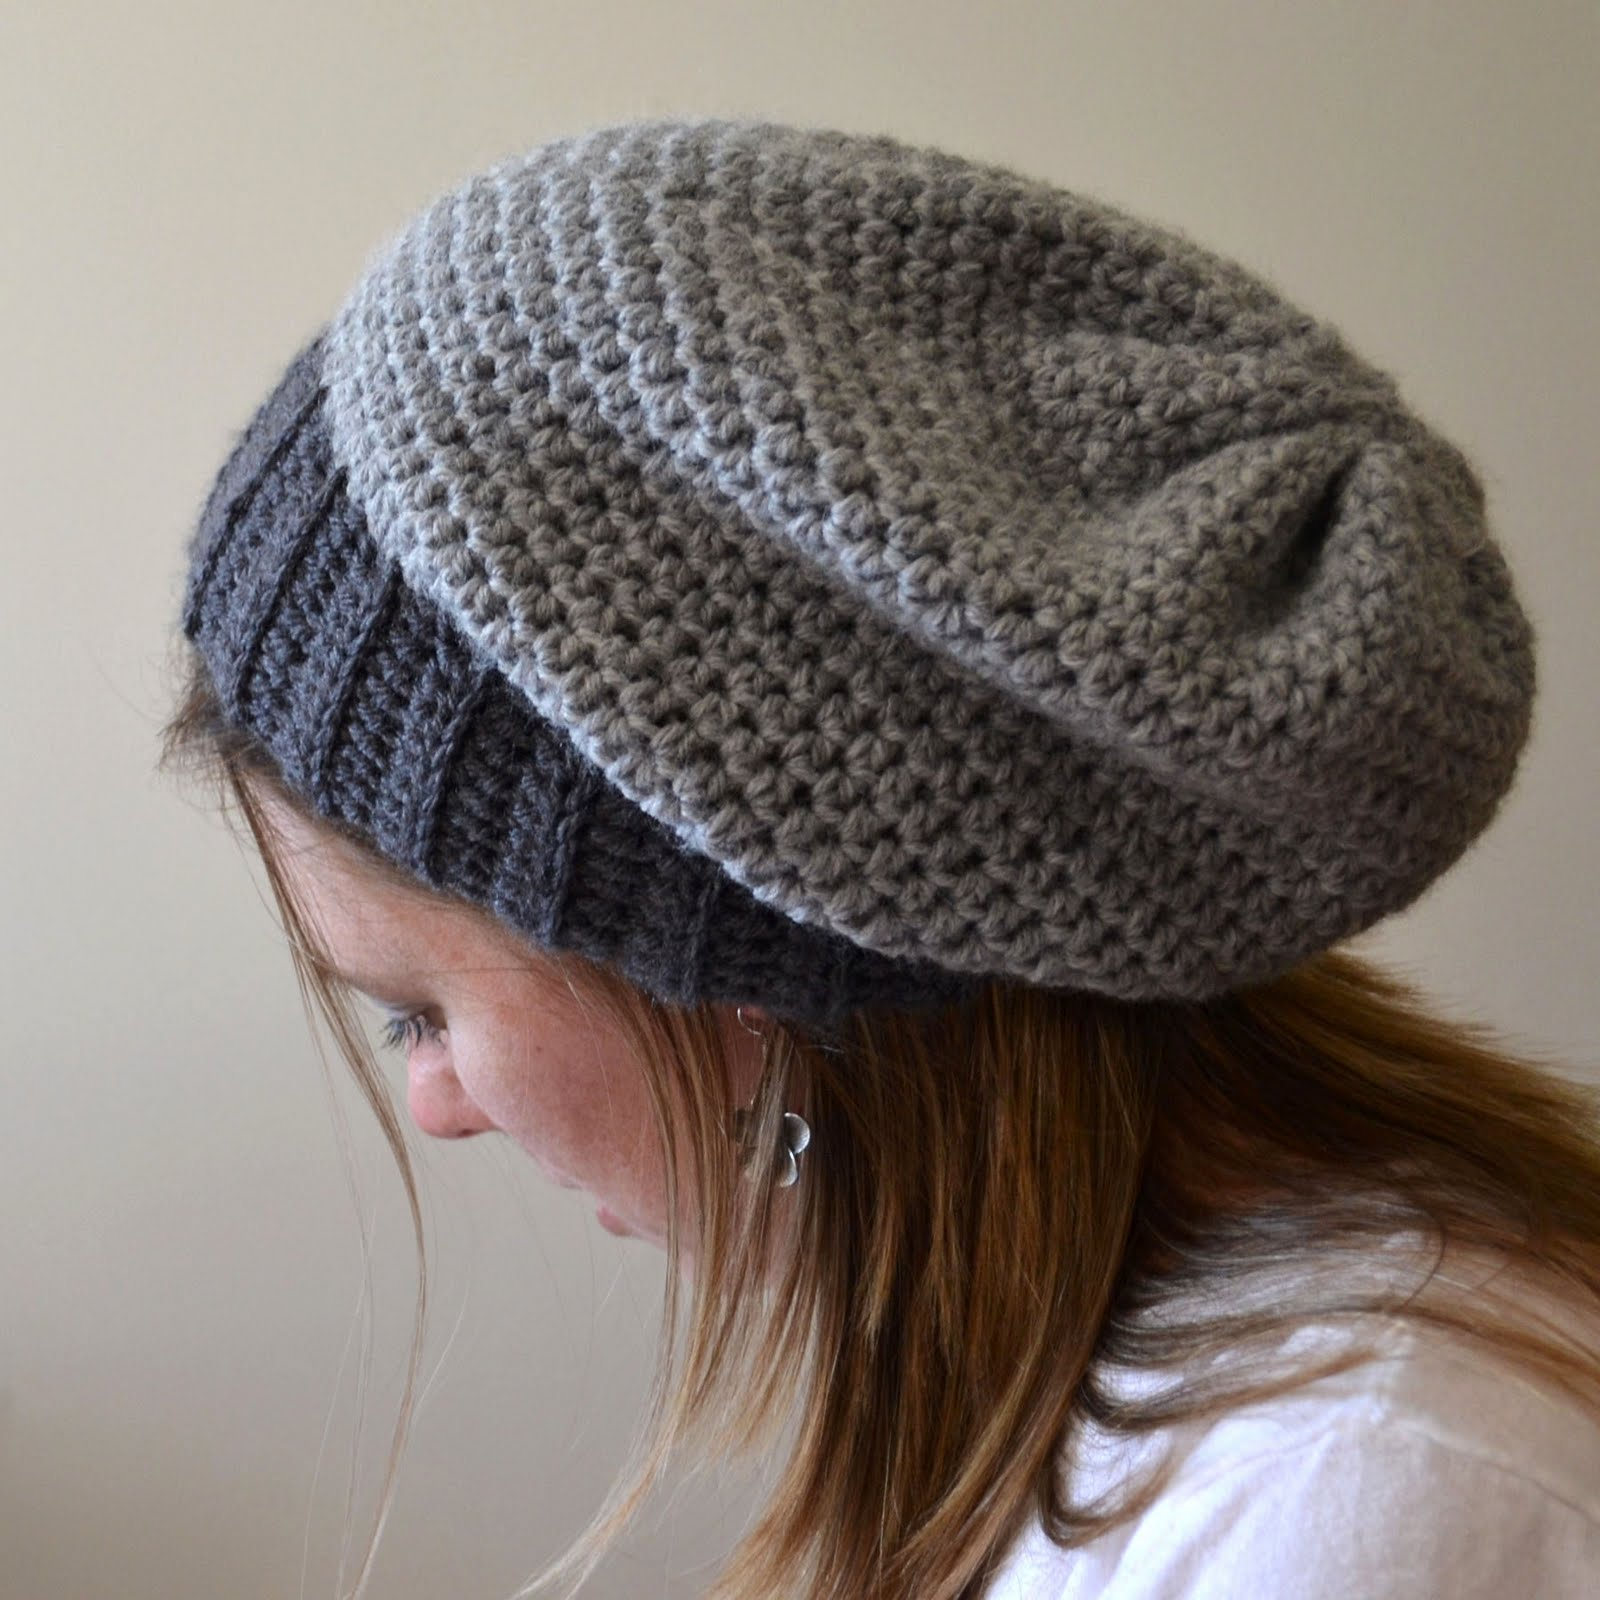 Crochet Patterns Slouchy Beanie : Crochet in Color: January Giveaway